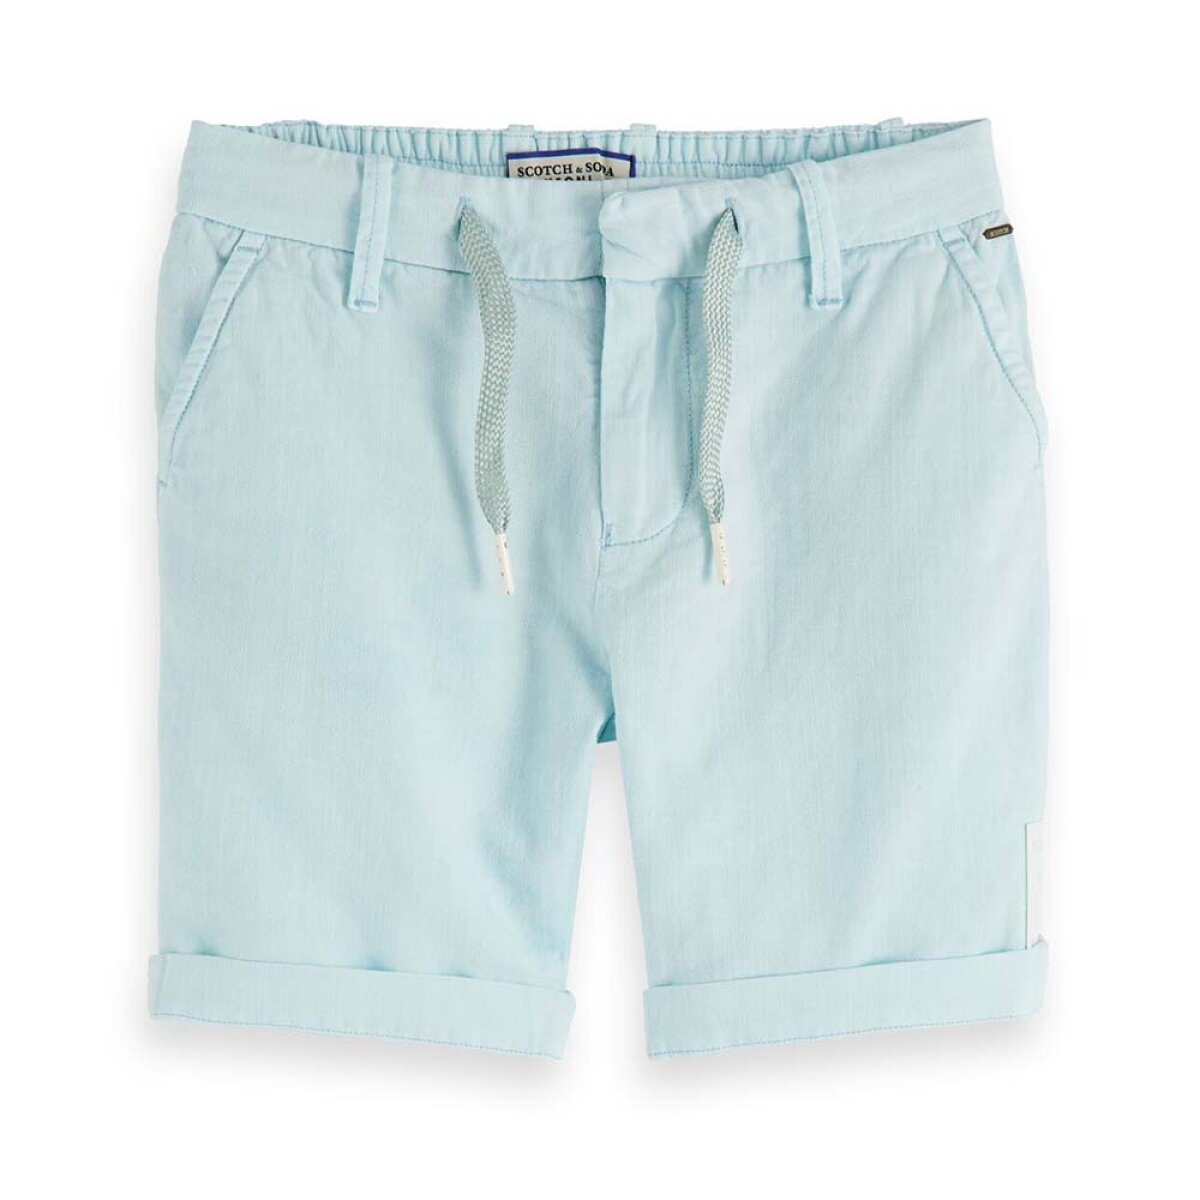 Scotch & Soda short 156528 blauw